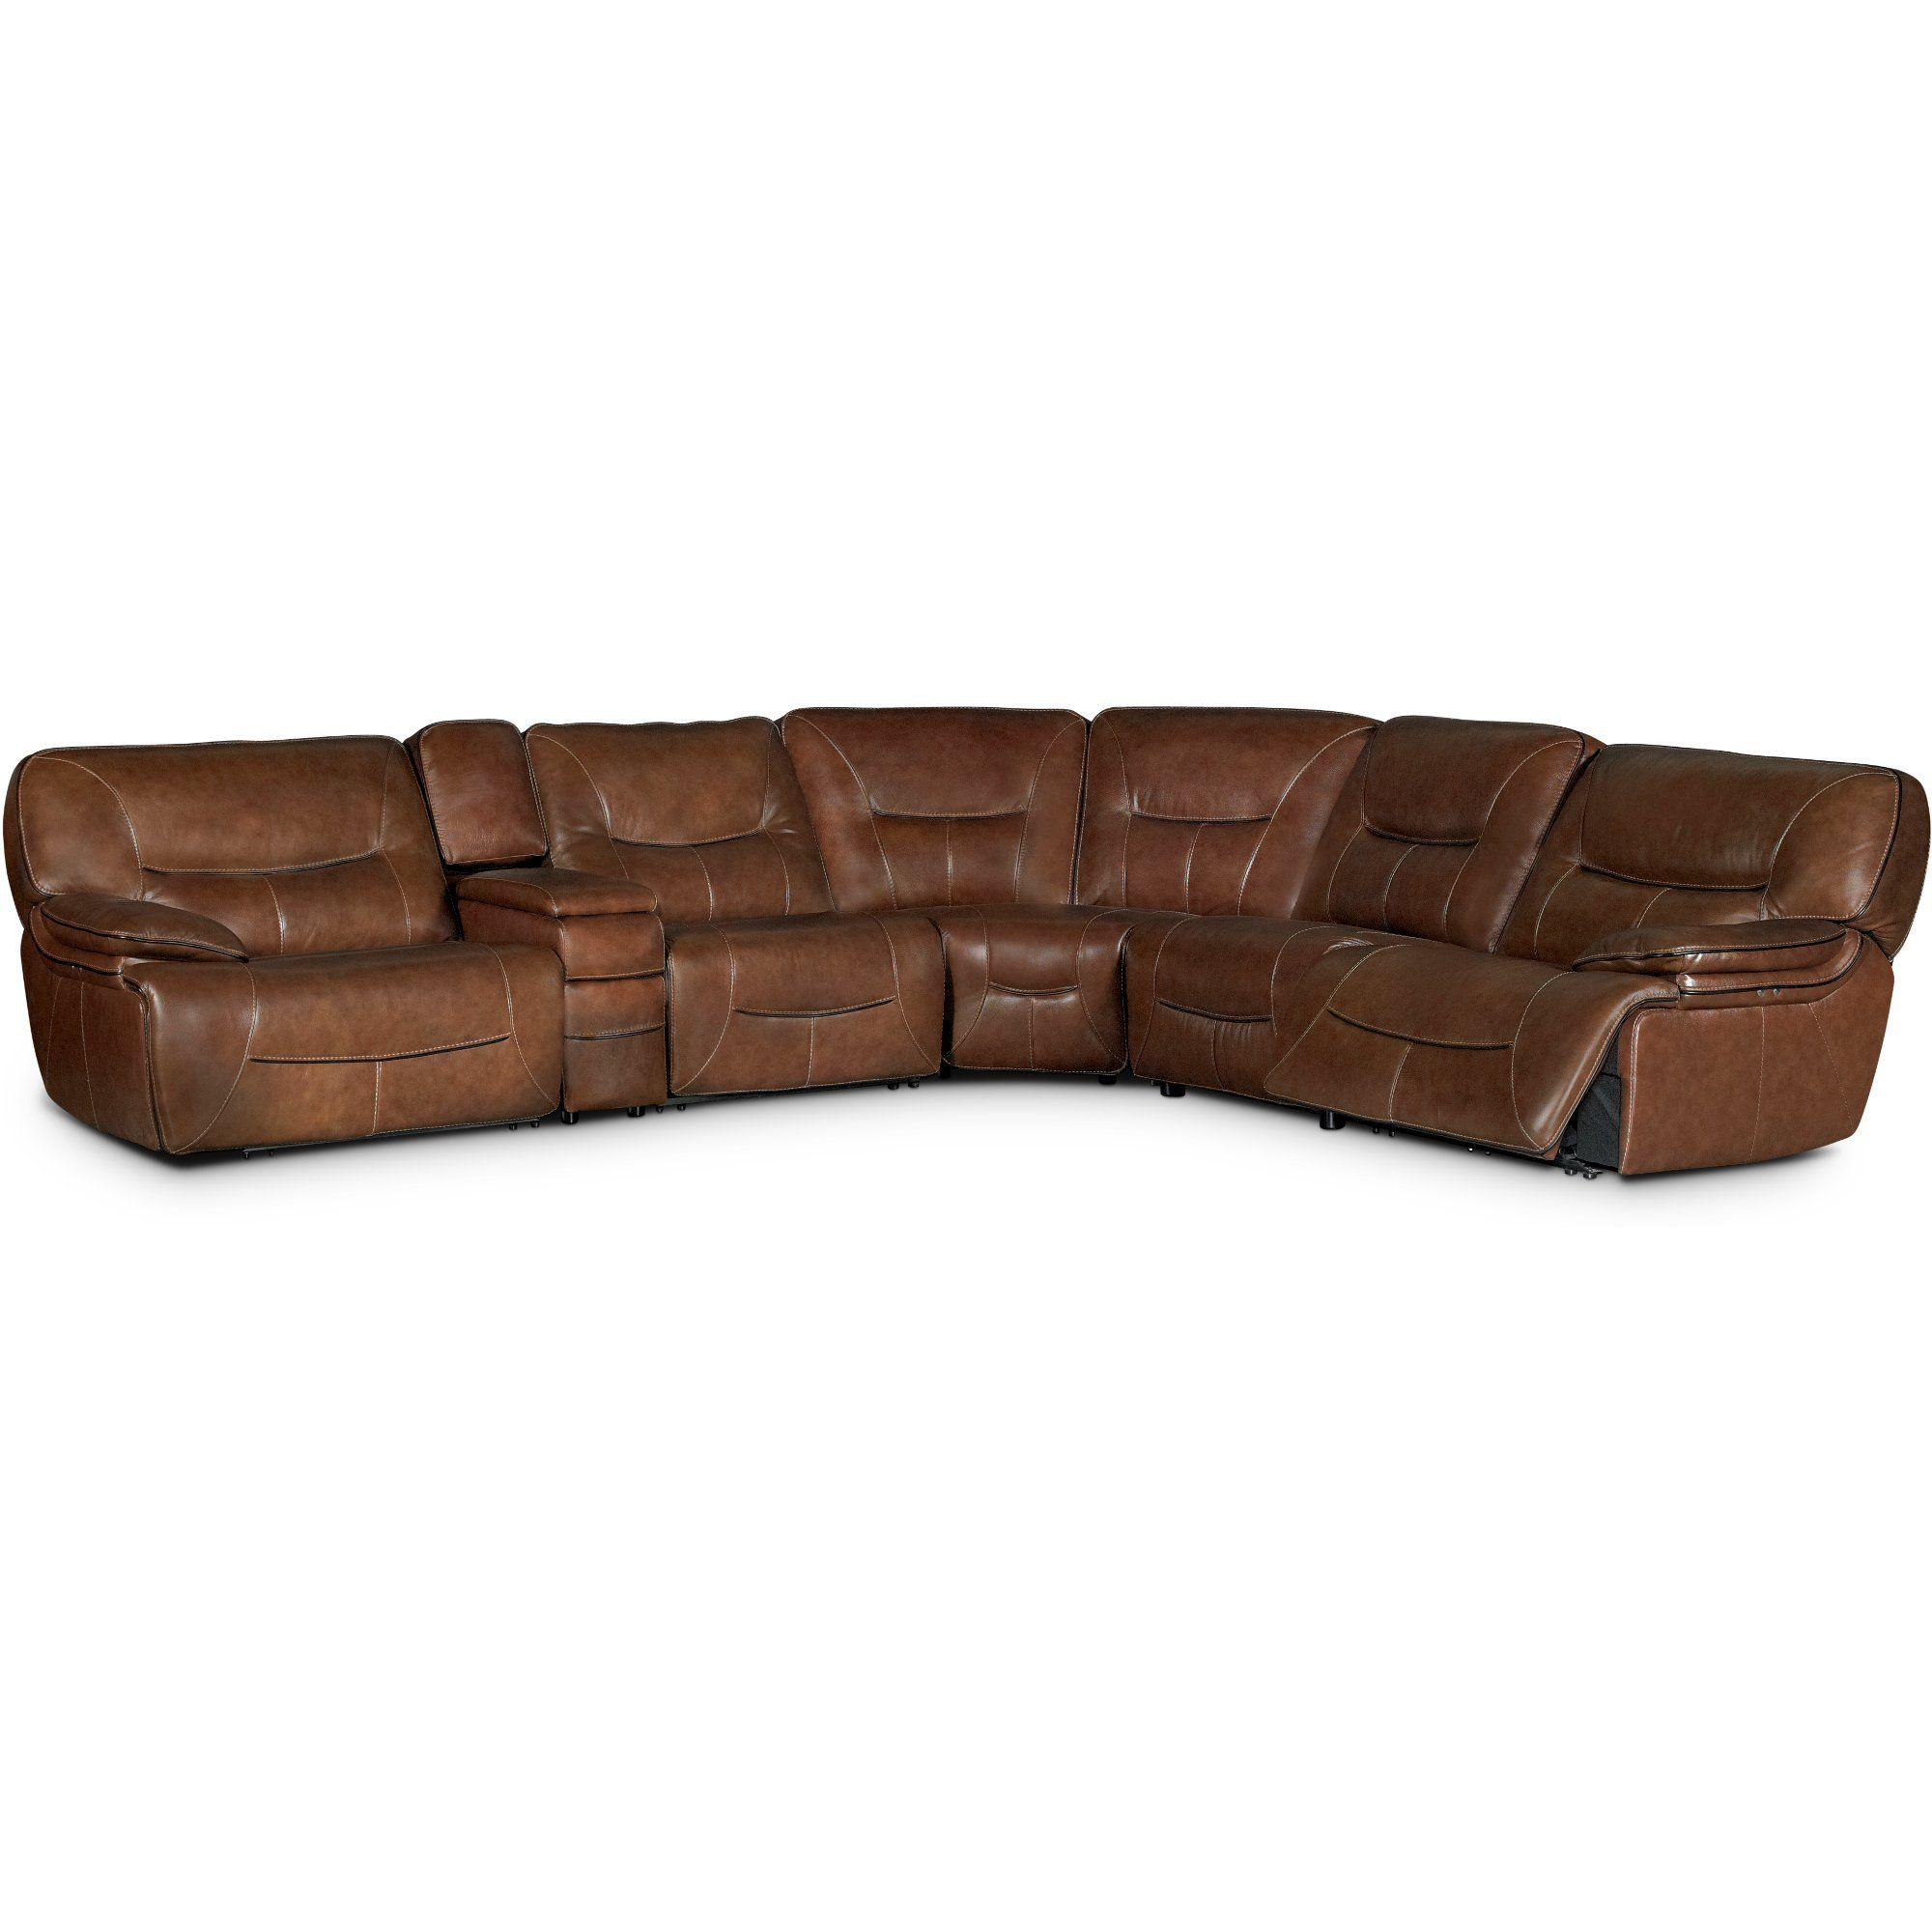 Brown leathermatch power reclining sectional sofa max